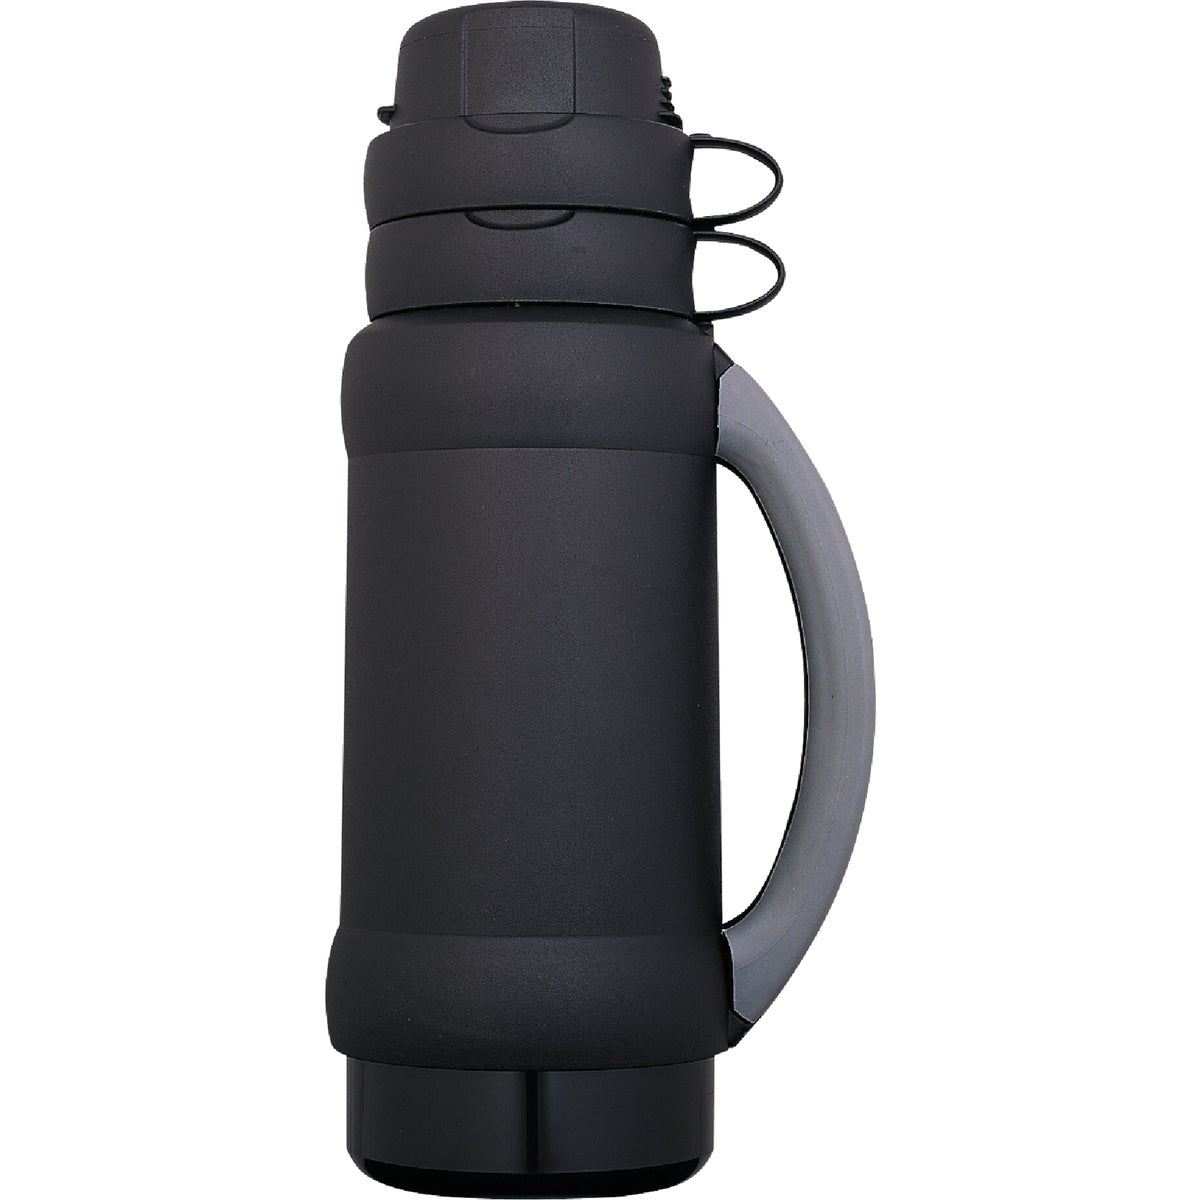 35OZ VACUUM BOTTLE - 3410USP by Thermos Co